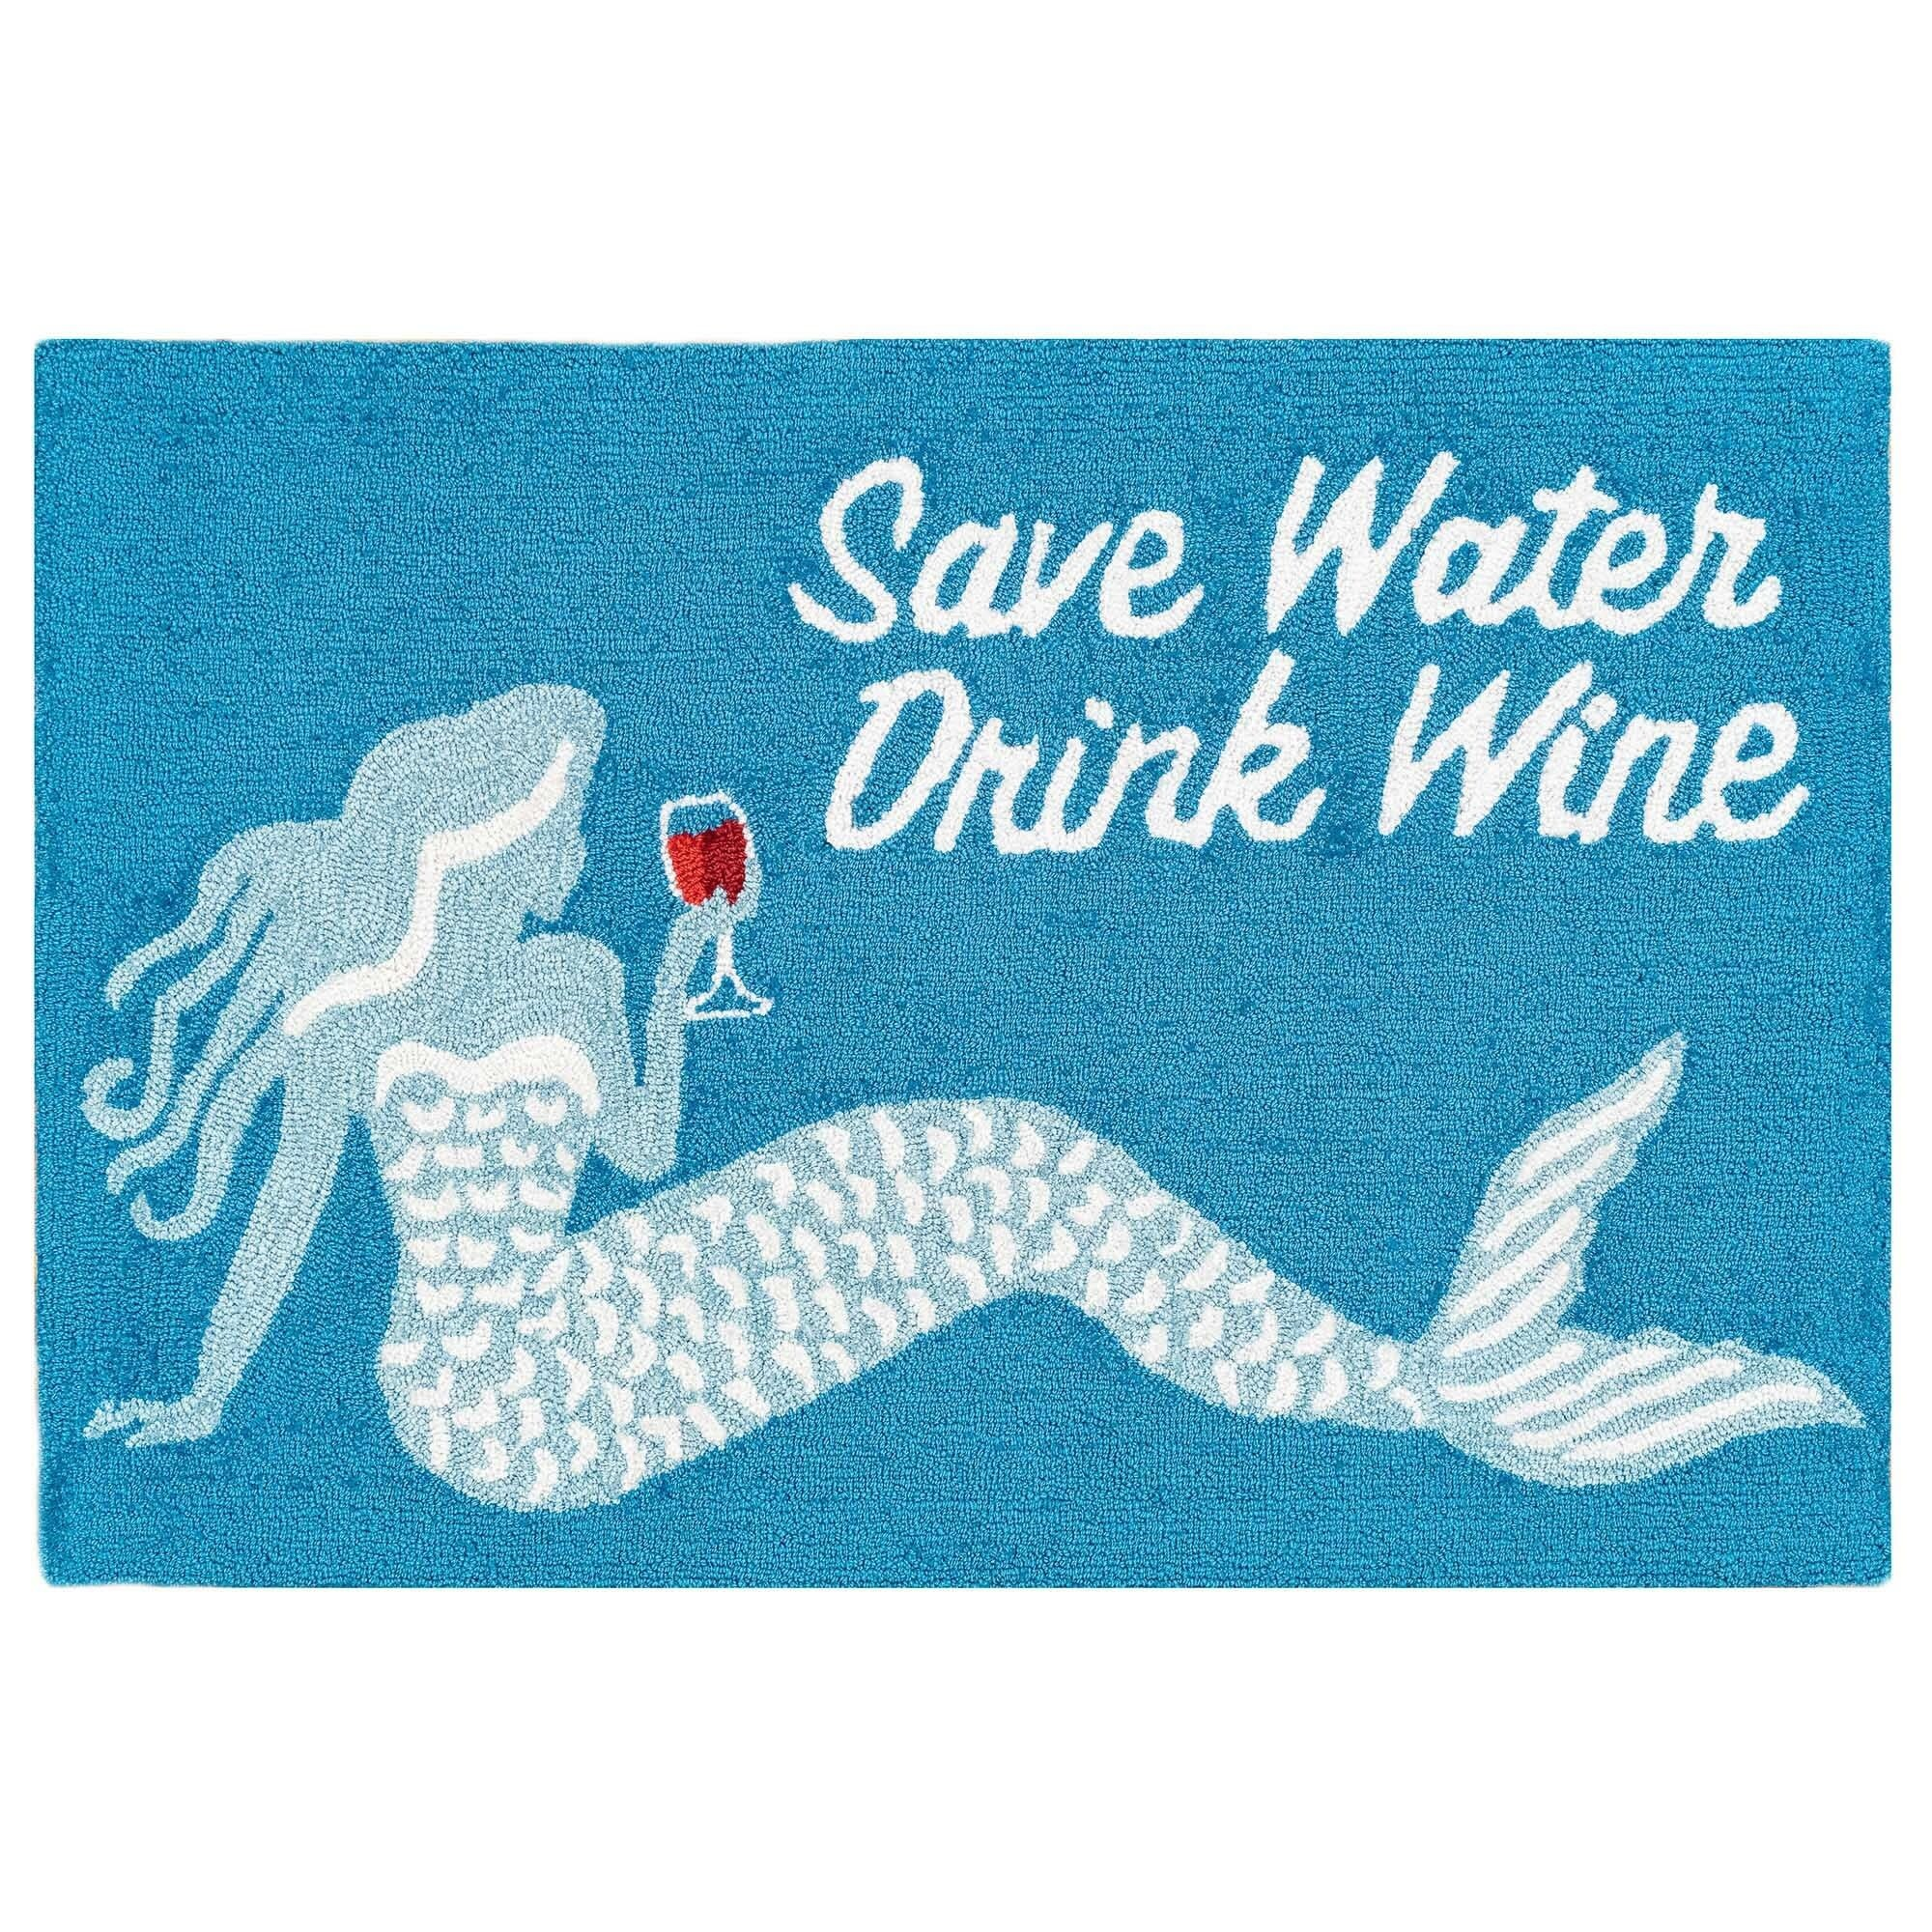 Save Water Drink Wine 24x36 Rug